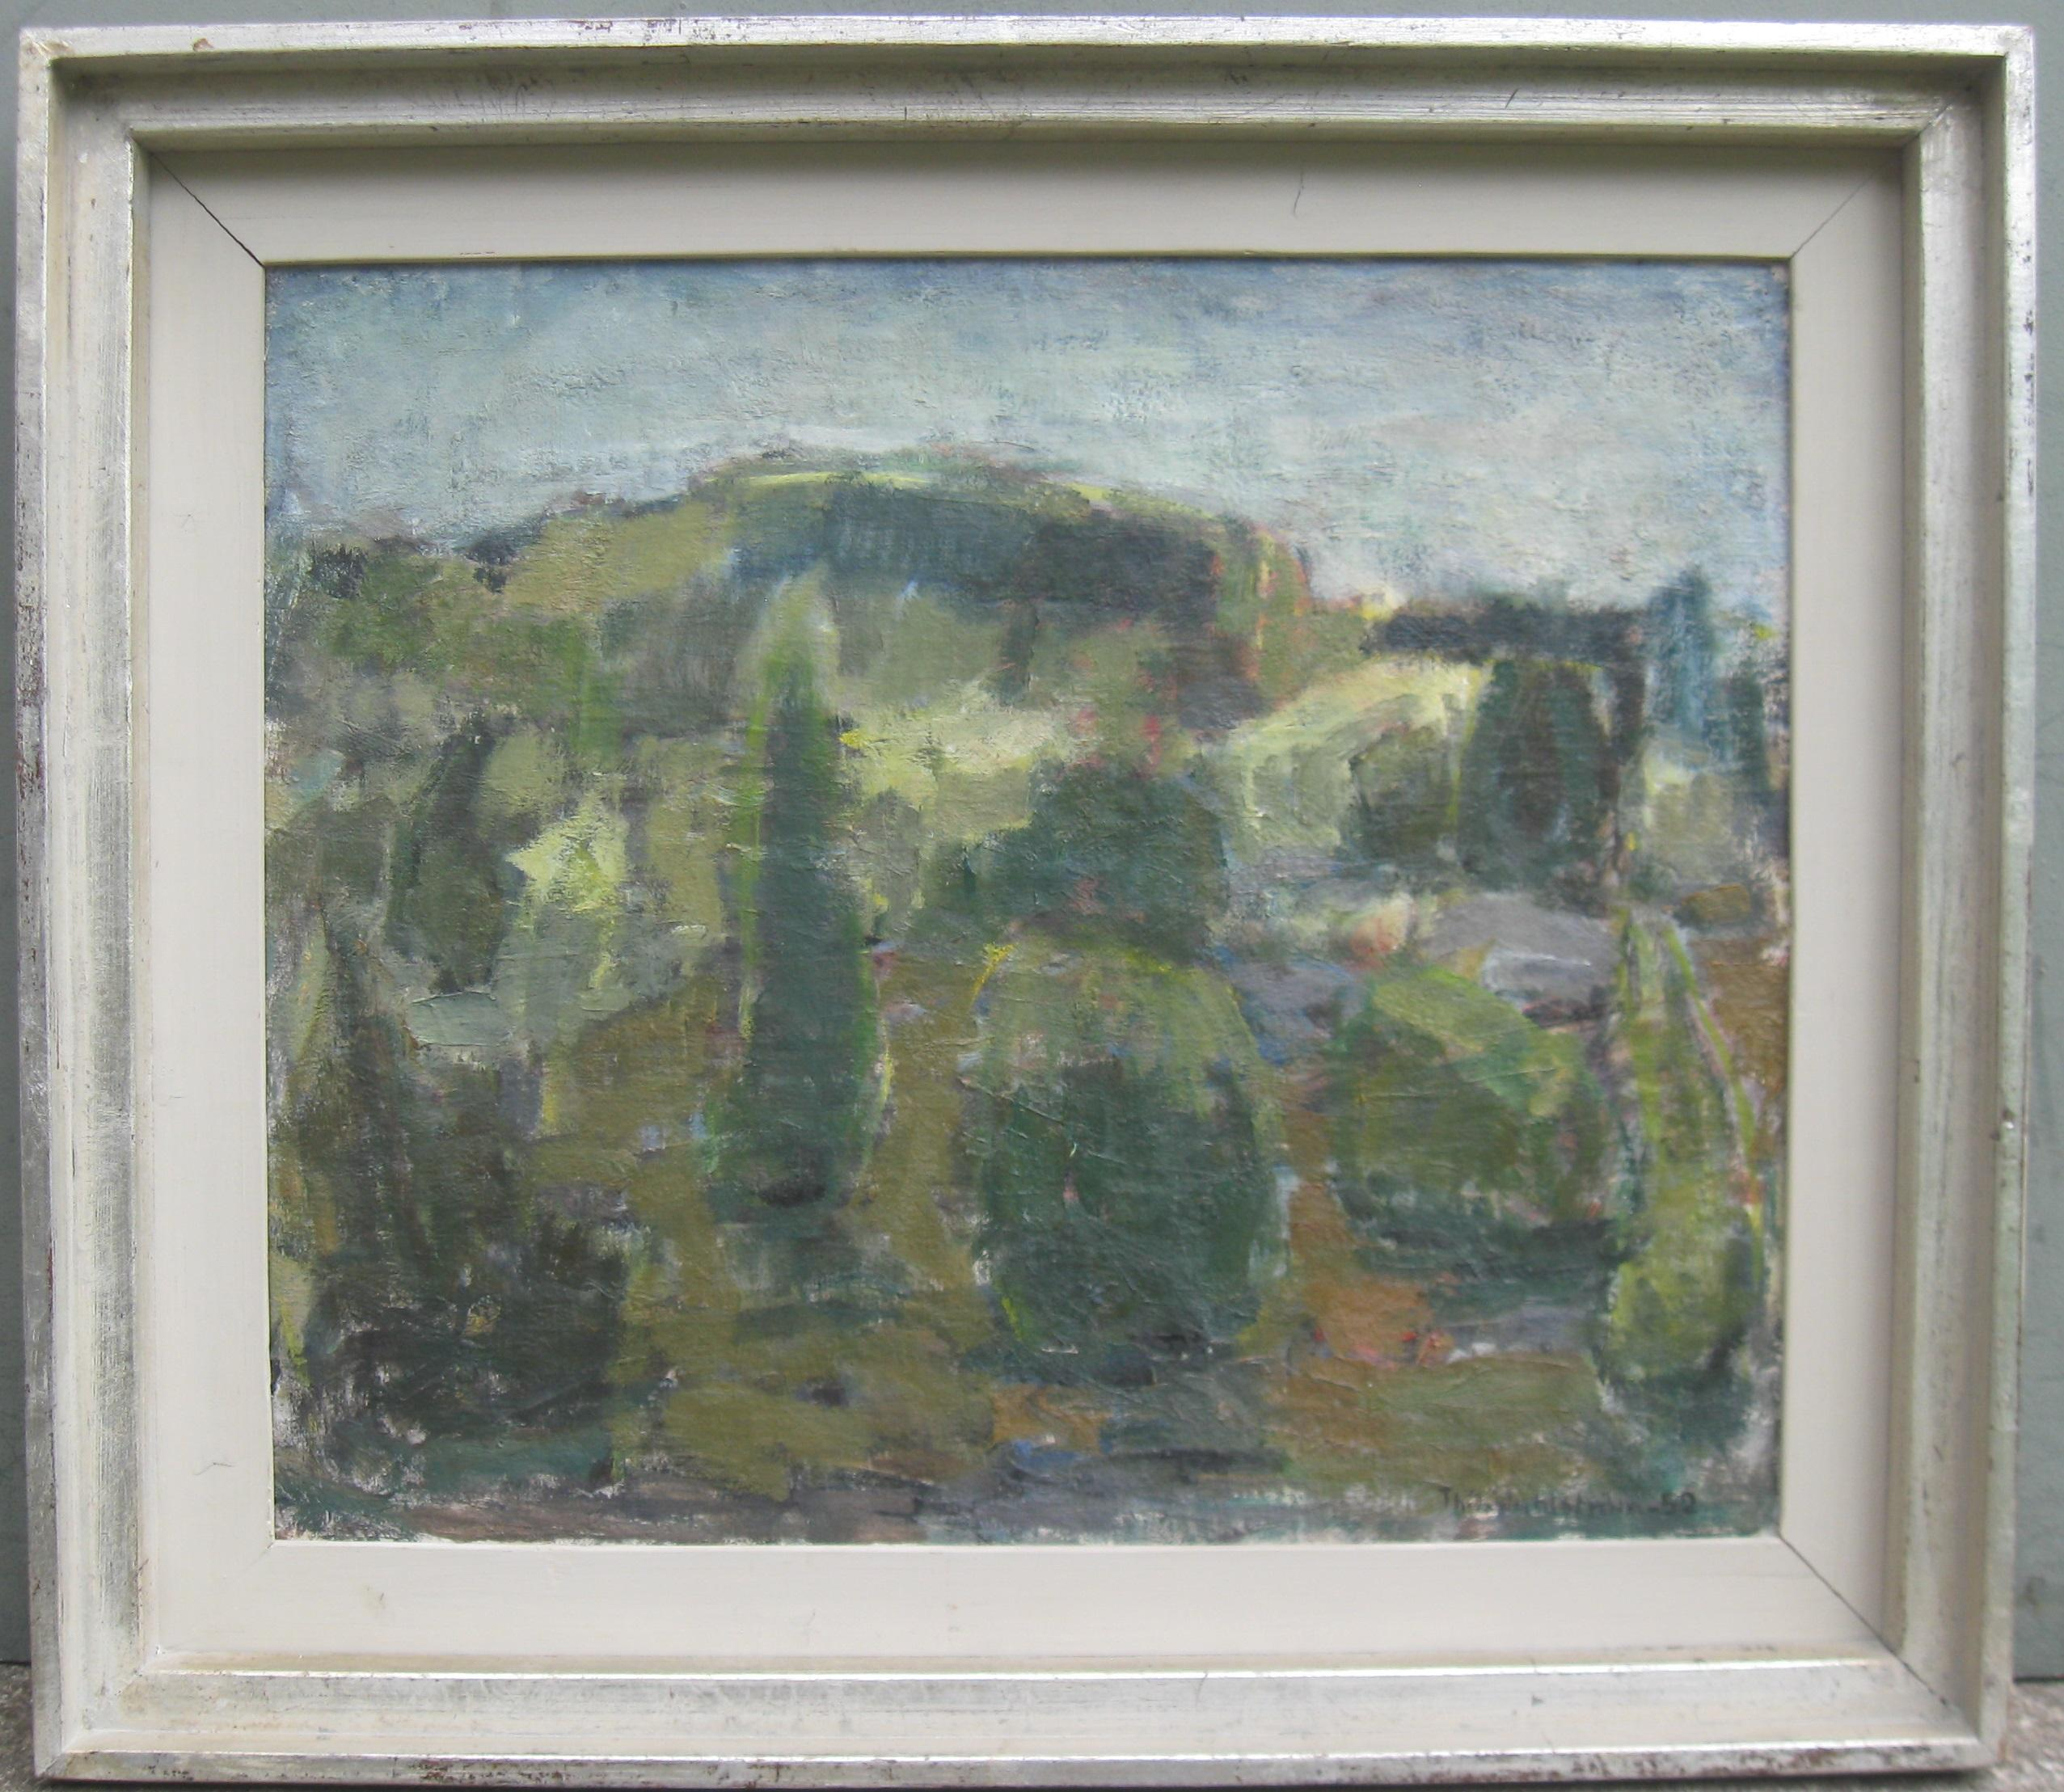 Post Impressionist/ Modernist; 'Hilly Landscape with Ruins' oil circa 1952